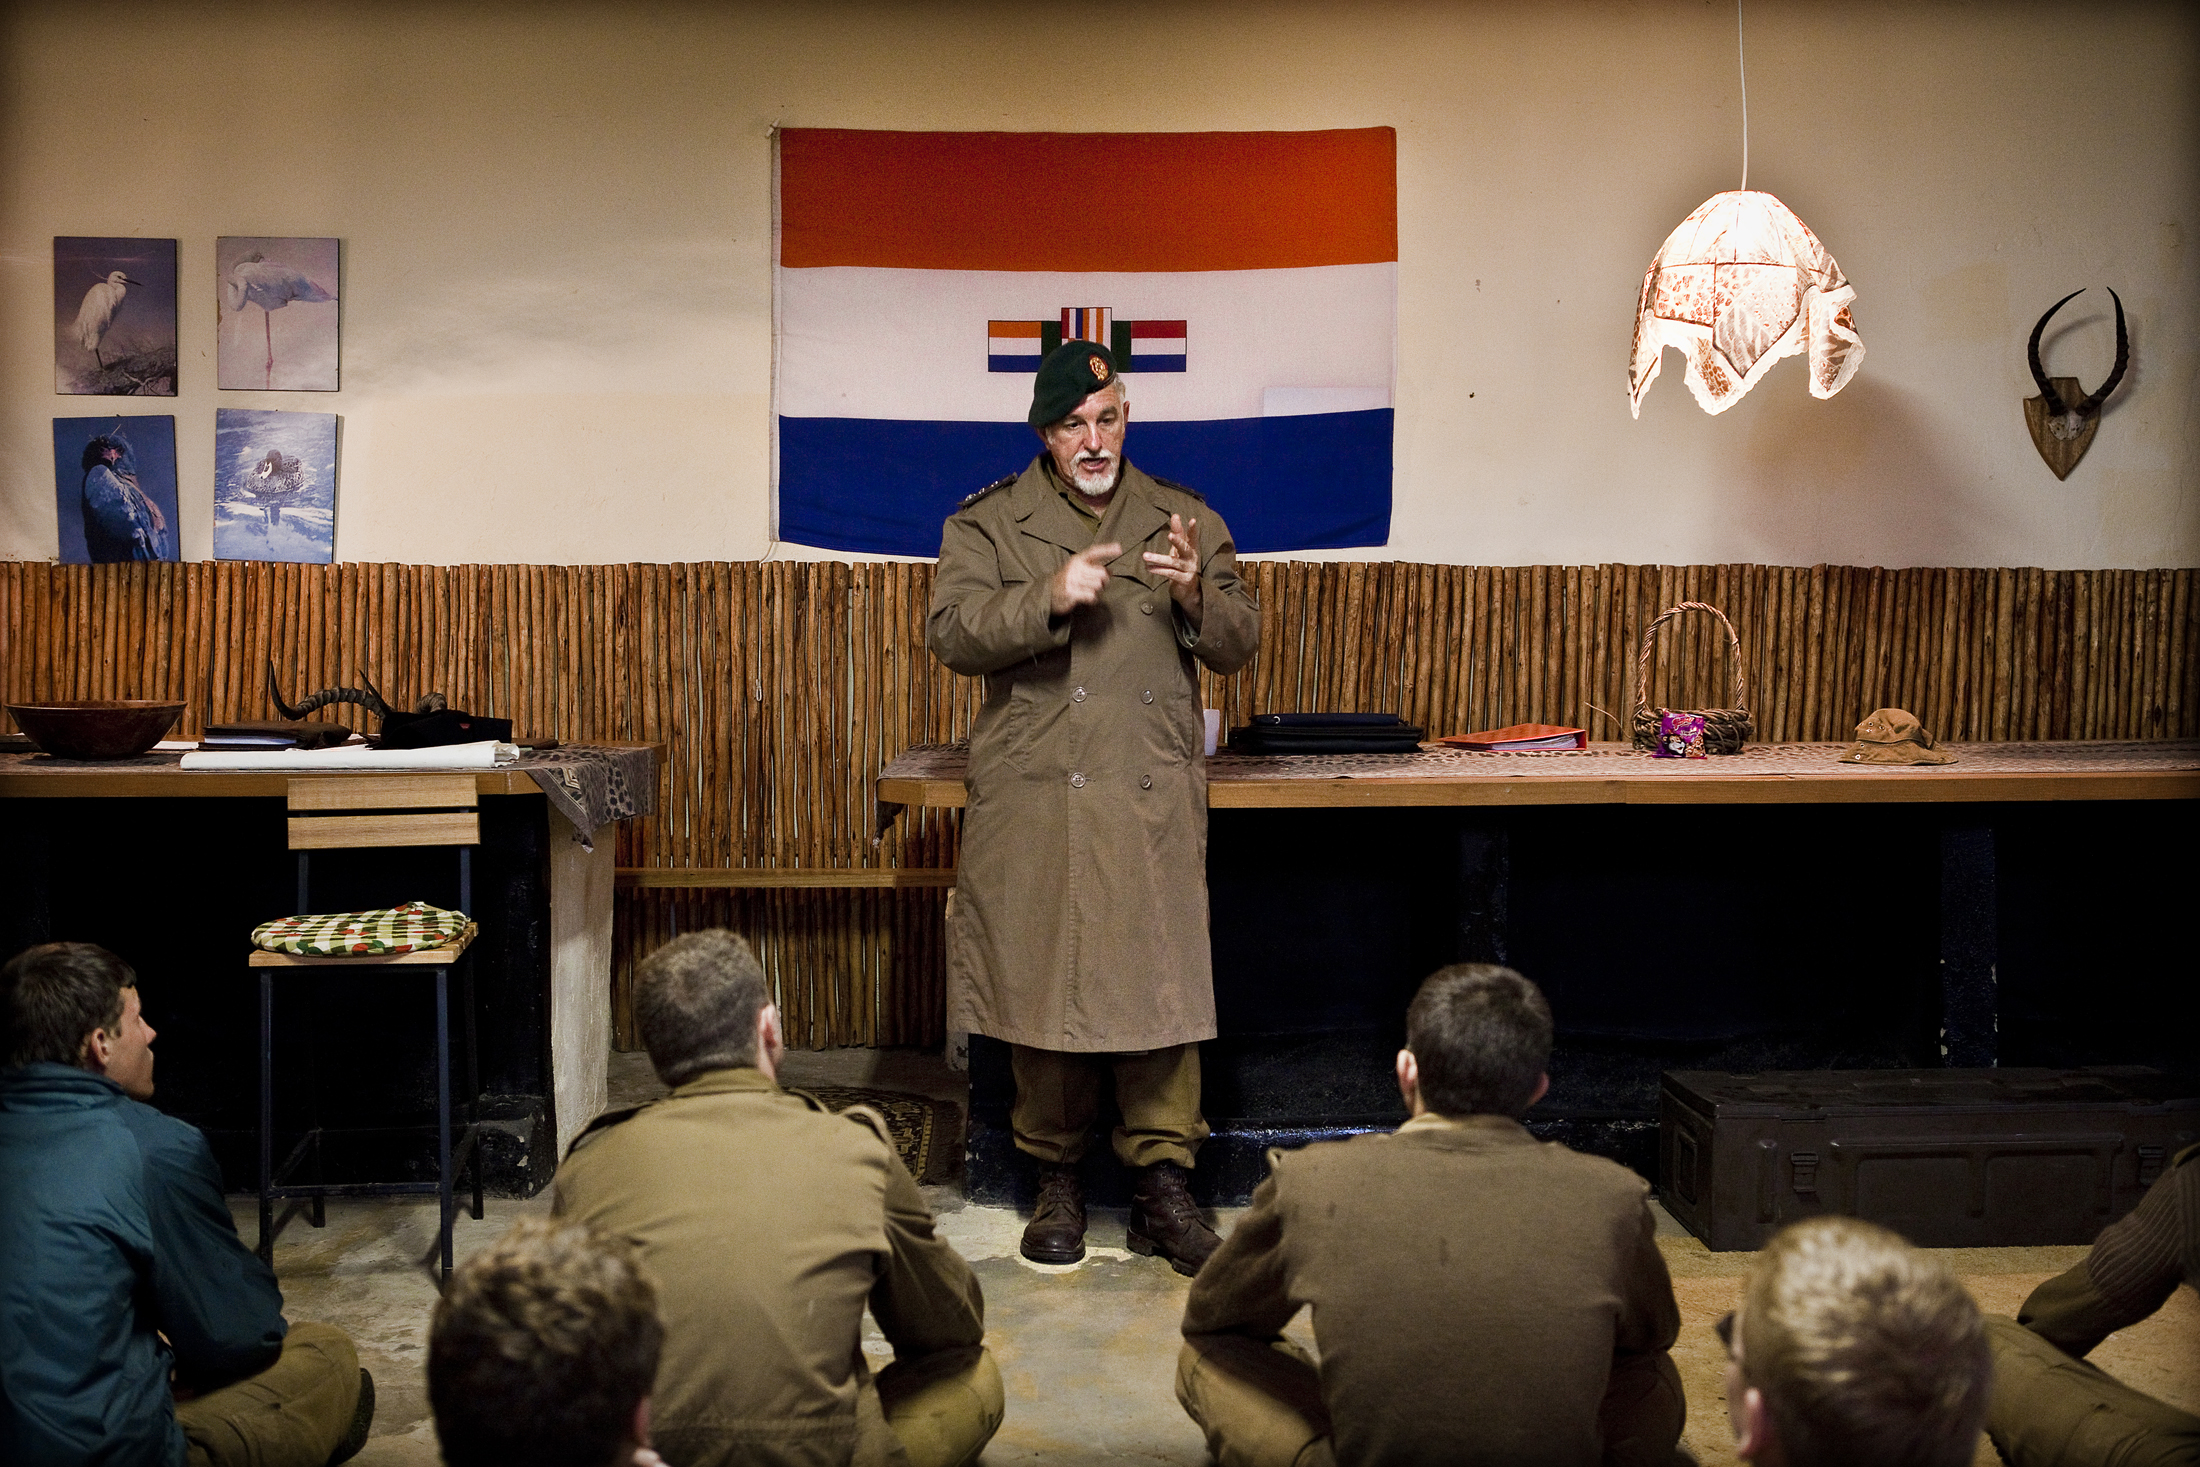 Self-acclaimed colonel and leader of the camp, Franz Jooste during one of his lectures at night at the kommandokorps camp.  Aside from the Aborigines in Australia, the African black is the most underdeveloped, barbaric member of the human race on Earth,  he tells the boys during one of his lectures.